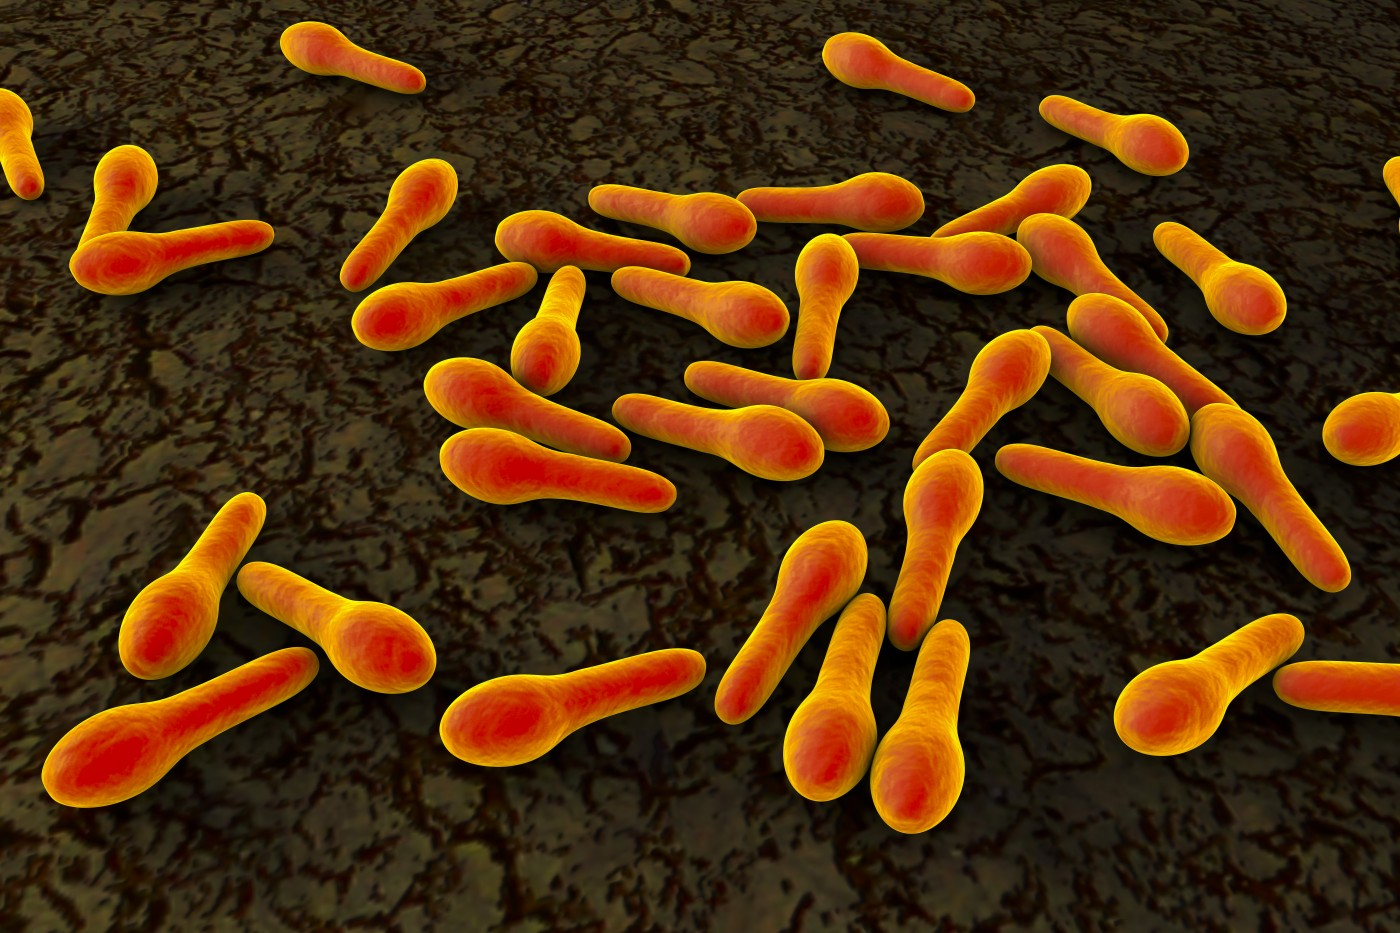 Cystic fibrosis and Clostridium difficile infection